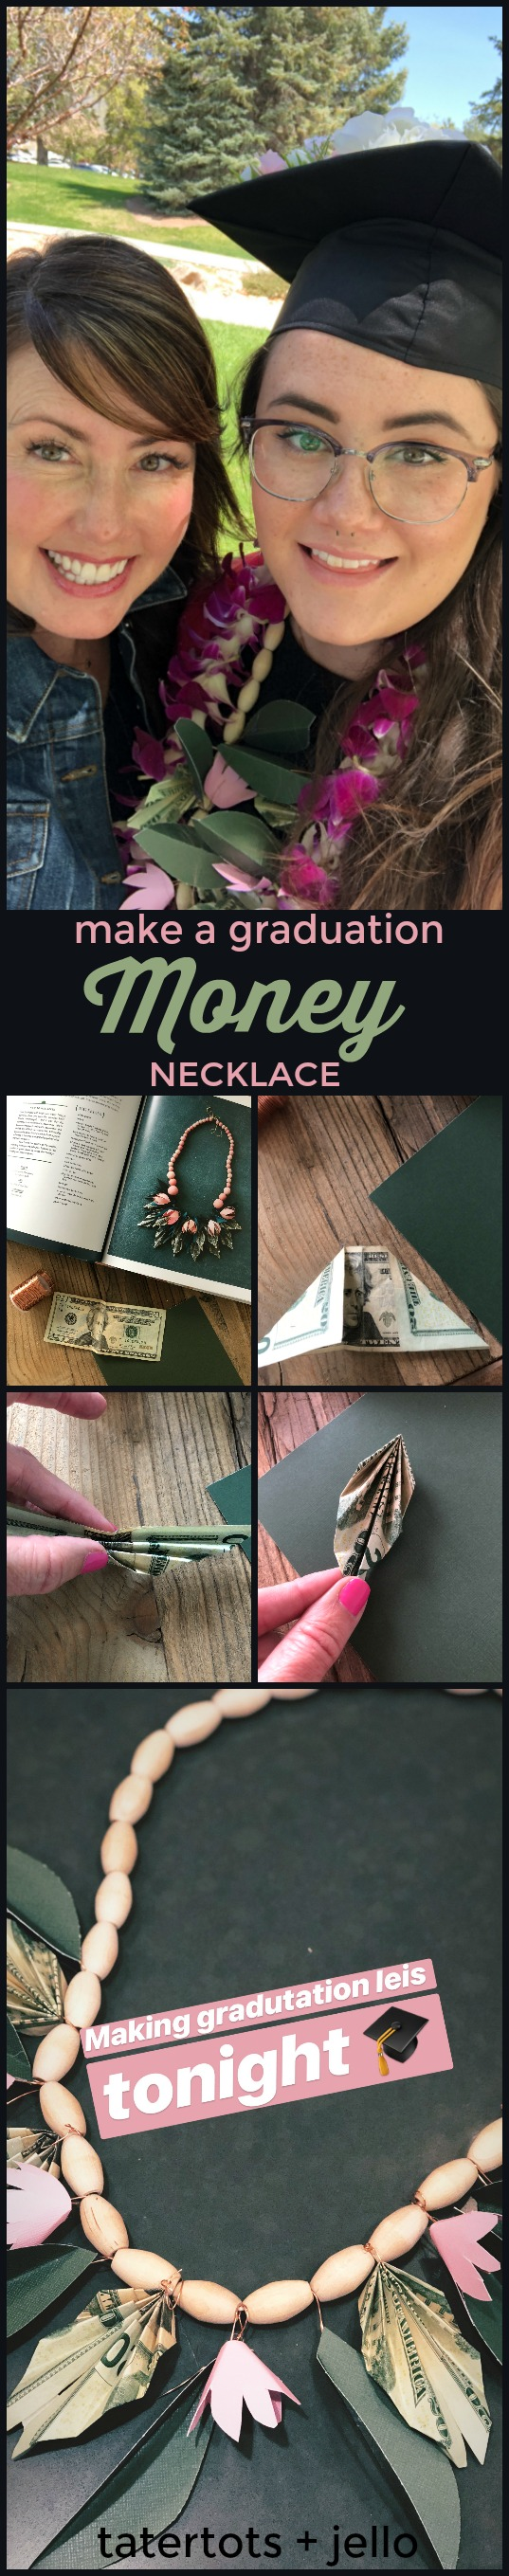 Make a Graduation Money Lei Necklace. Instead of giving money in an envelopefor graduation, get creative and make a graduation lei necklace with MONEY leafs! After graduation the graduate can take the paper elements off and still have a cute wood necklace to wear and remember their special day!